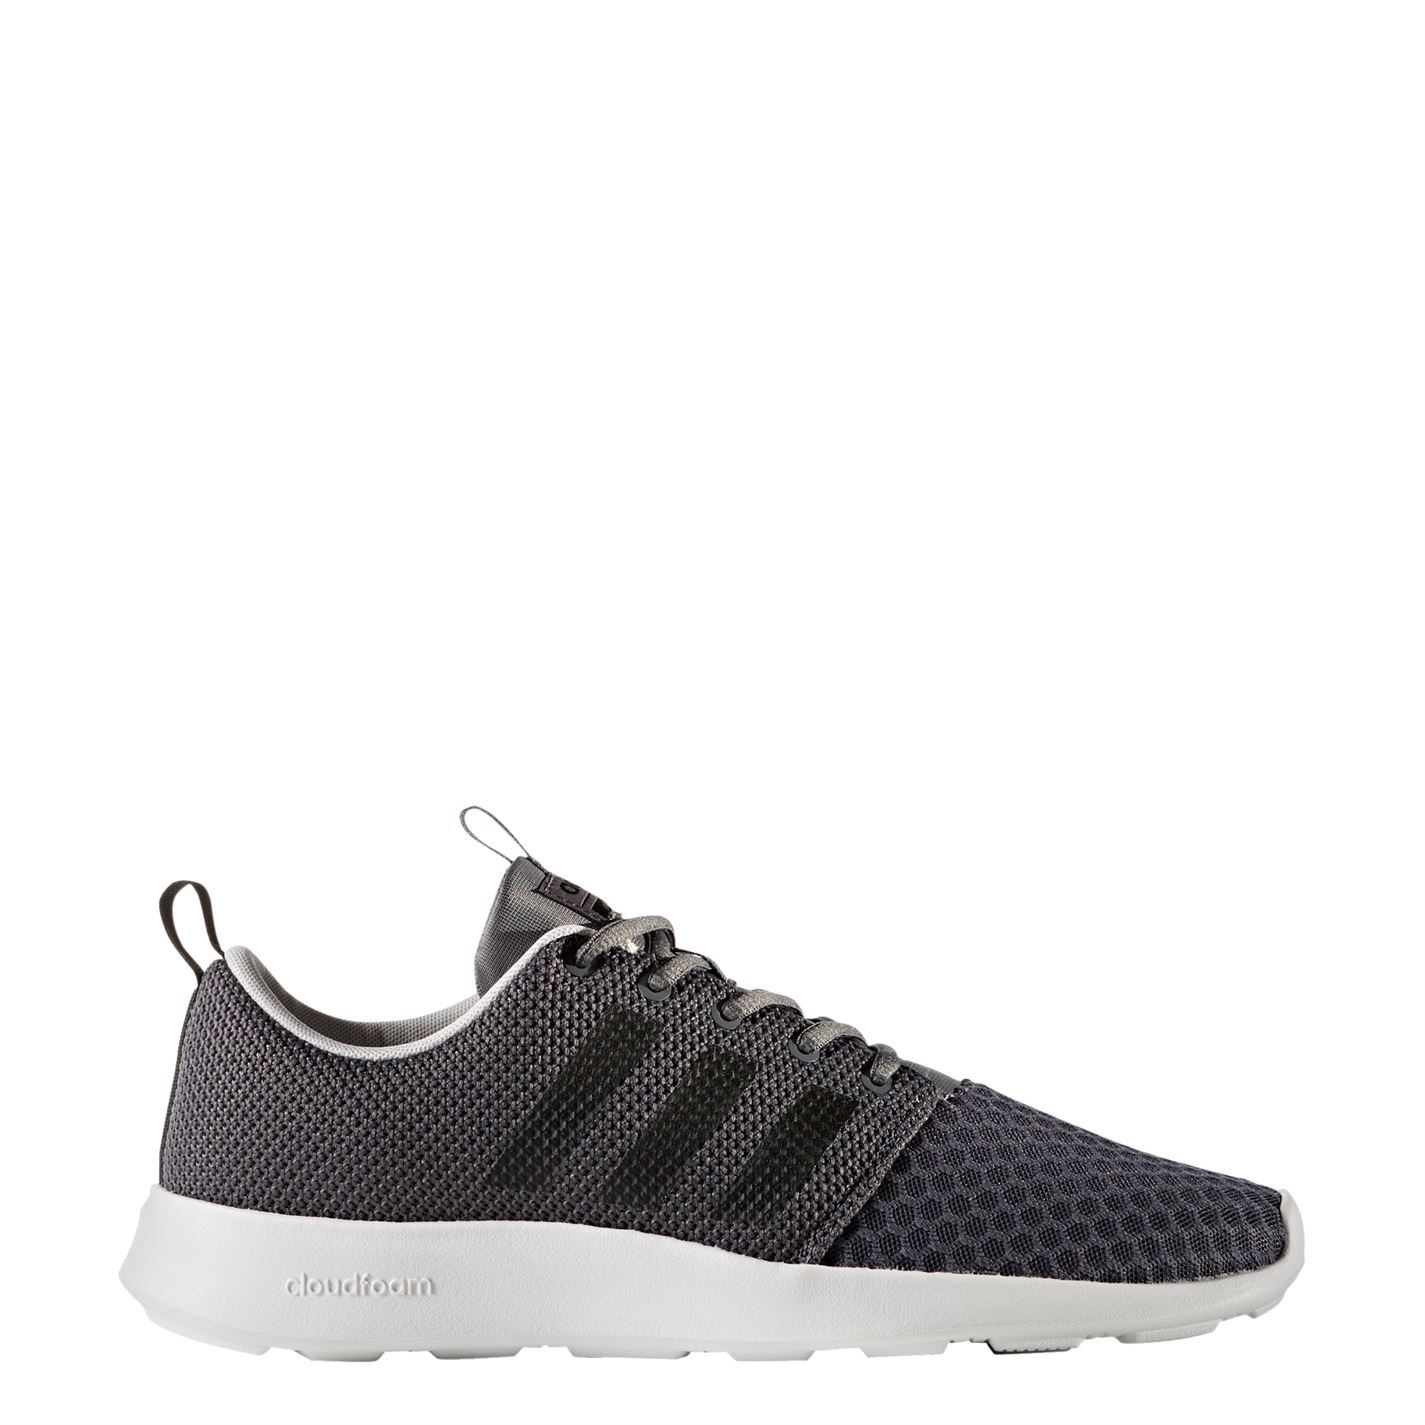 adidas cloudfoam trainers sports direct